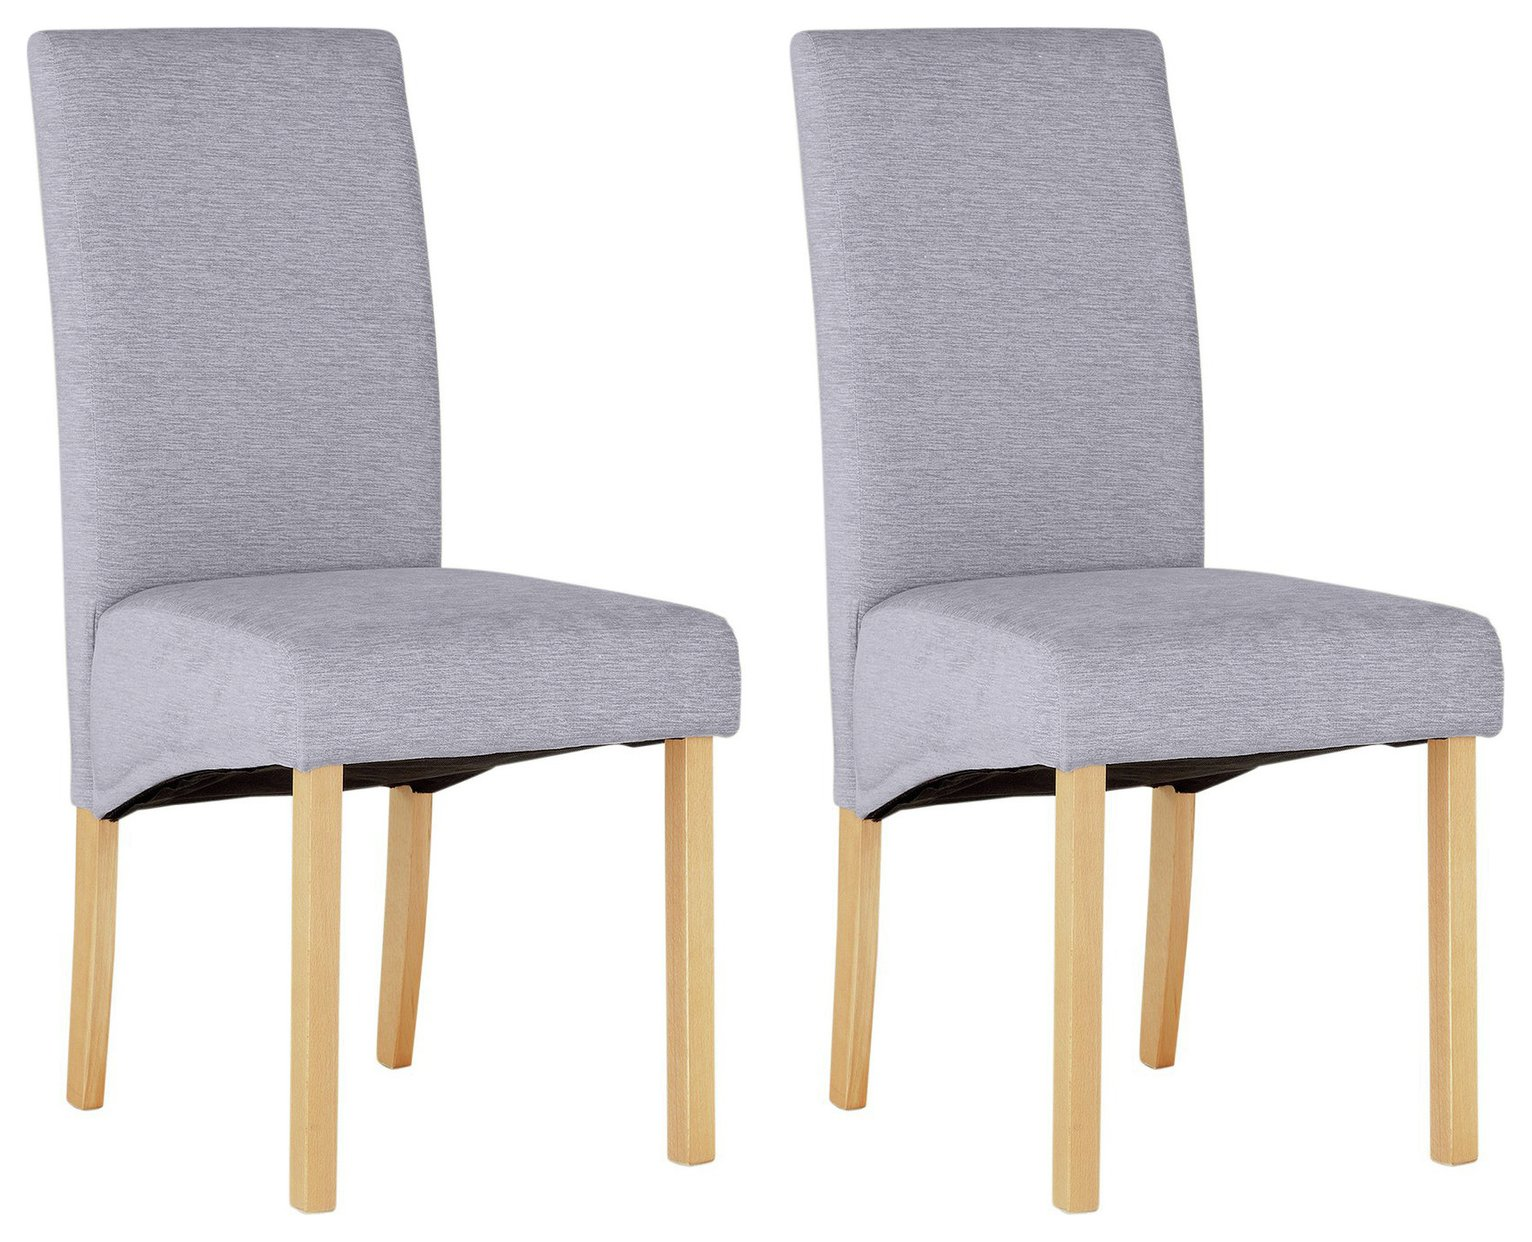 Argos Home Pair of Fabric Skirted Dining Chairs - Pale Grey